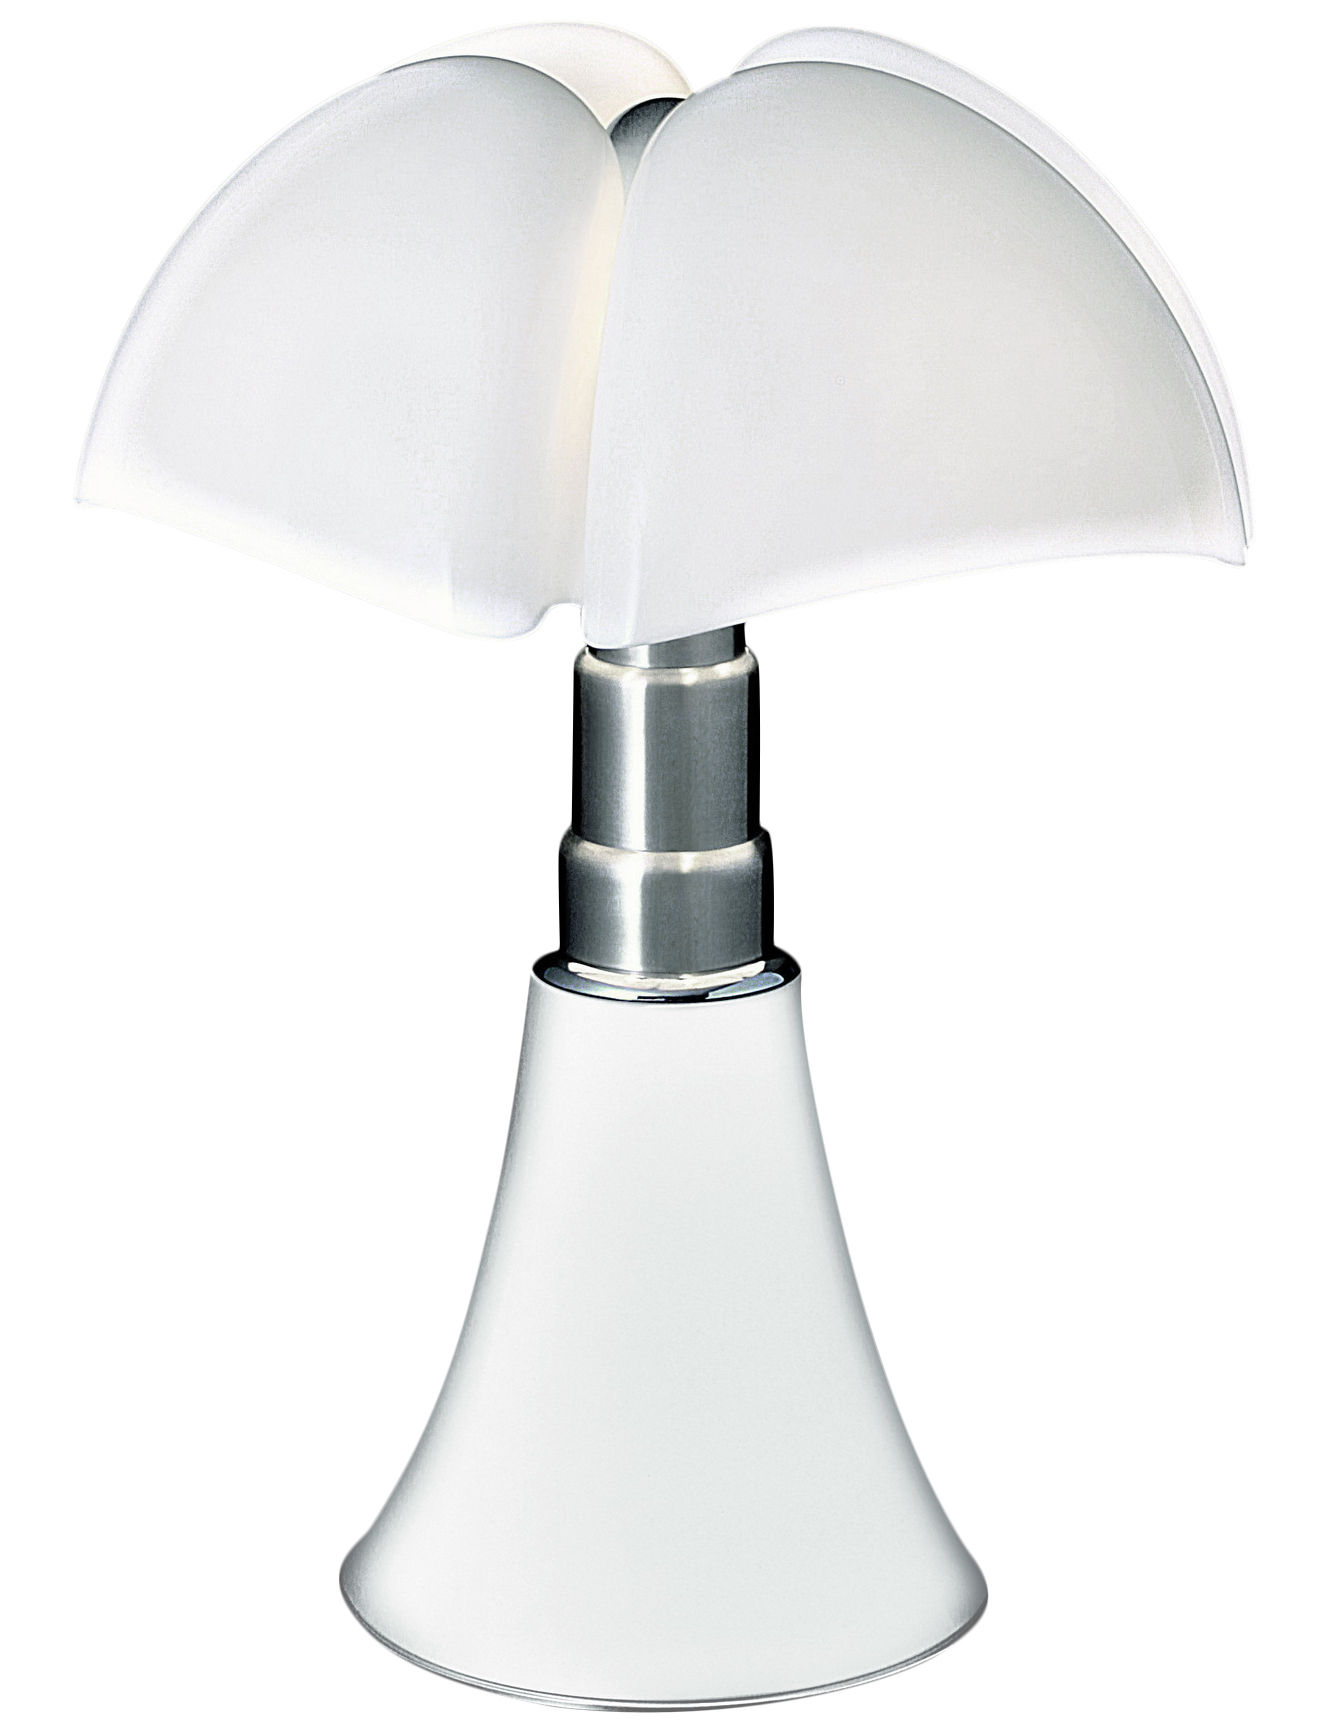 pipistrello table lamp h 66 to 86 cm white white lampshade by martinelli luce. Black Bedroom Furniture Sets. Home Design Ideas